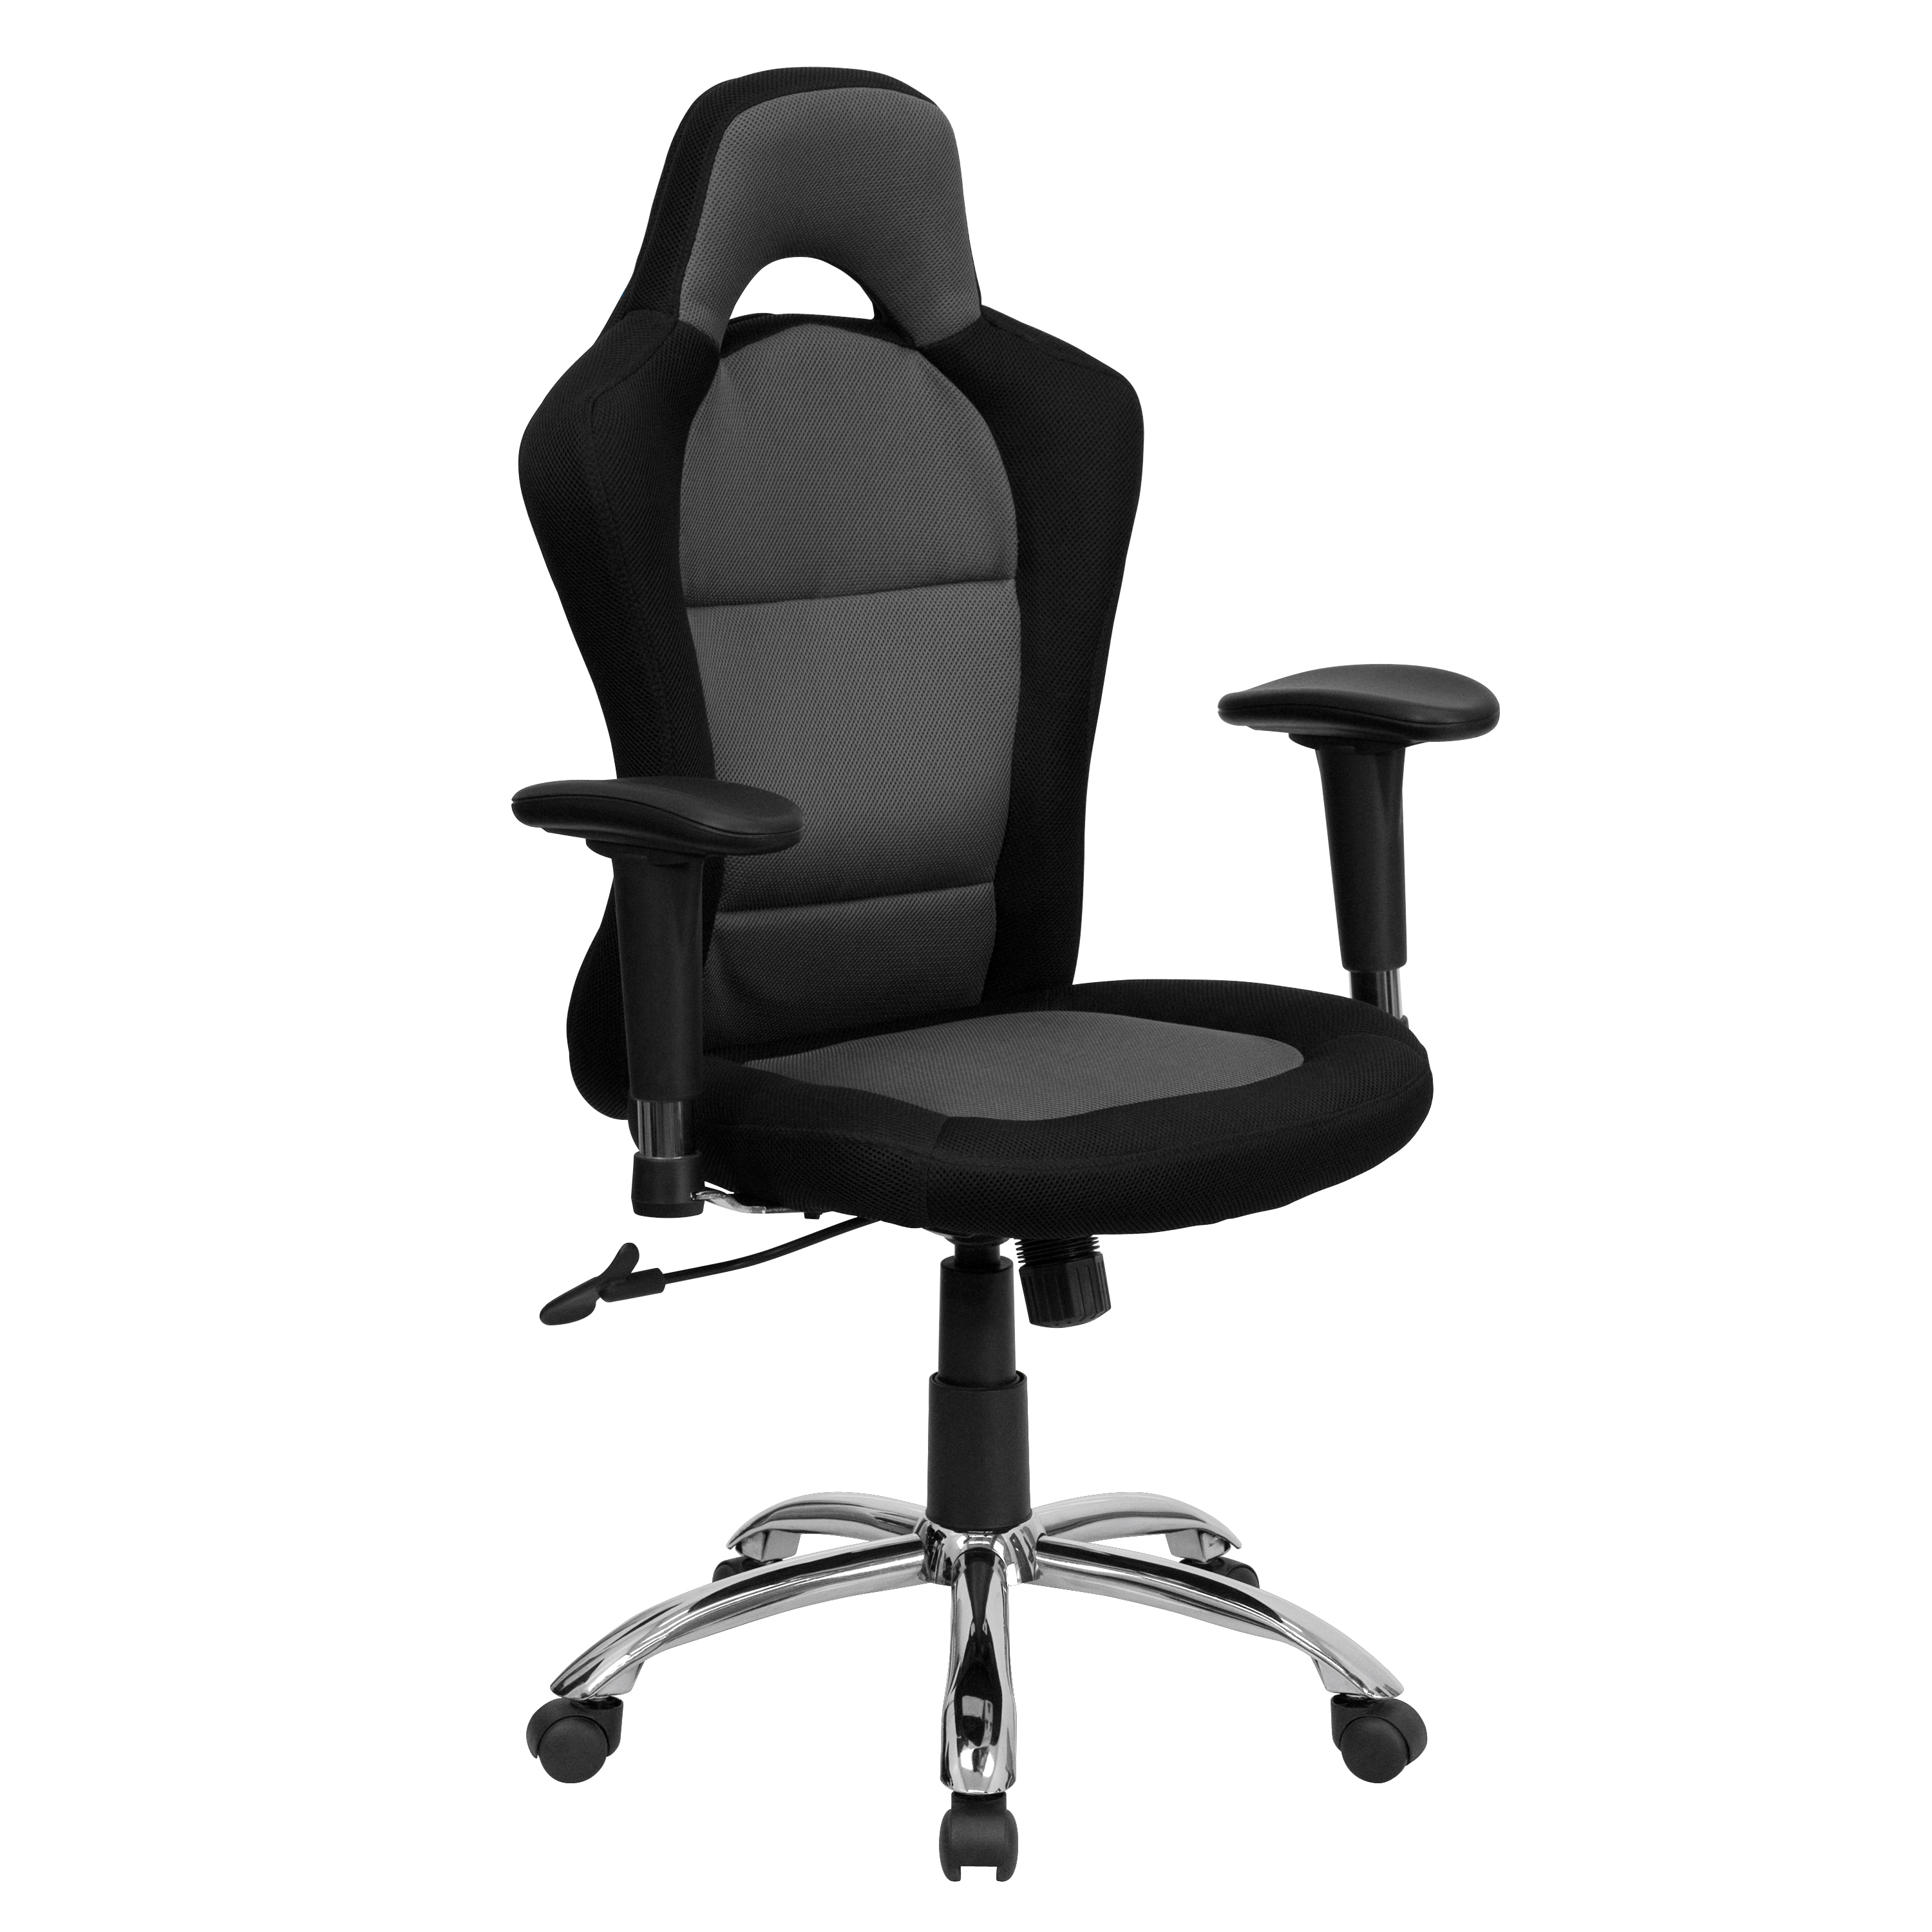 flash race car inspired bucket seat office chair in gray